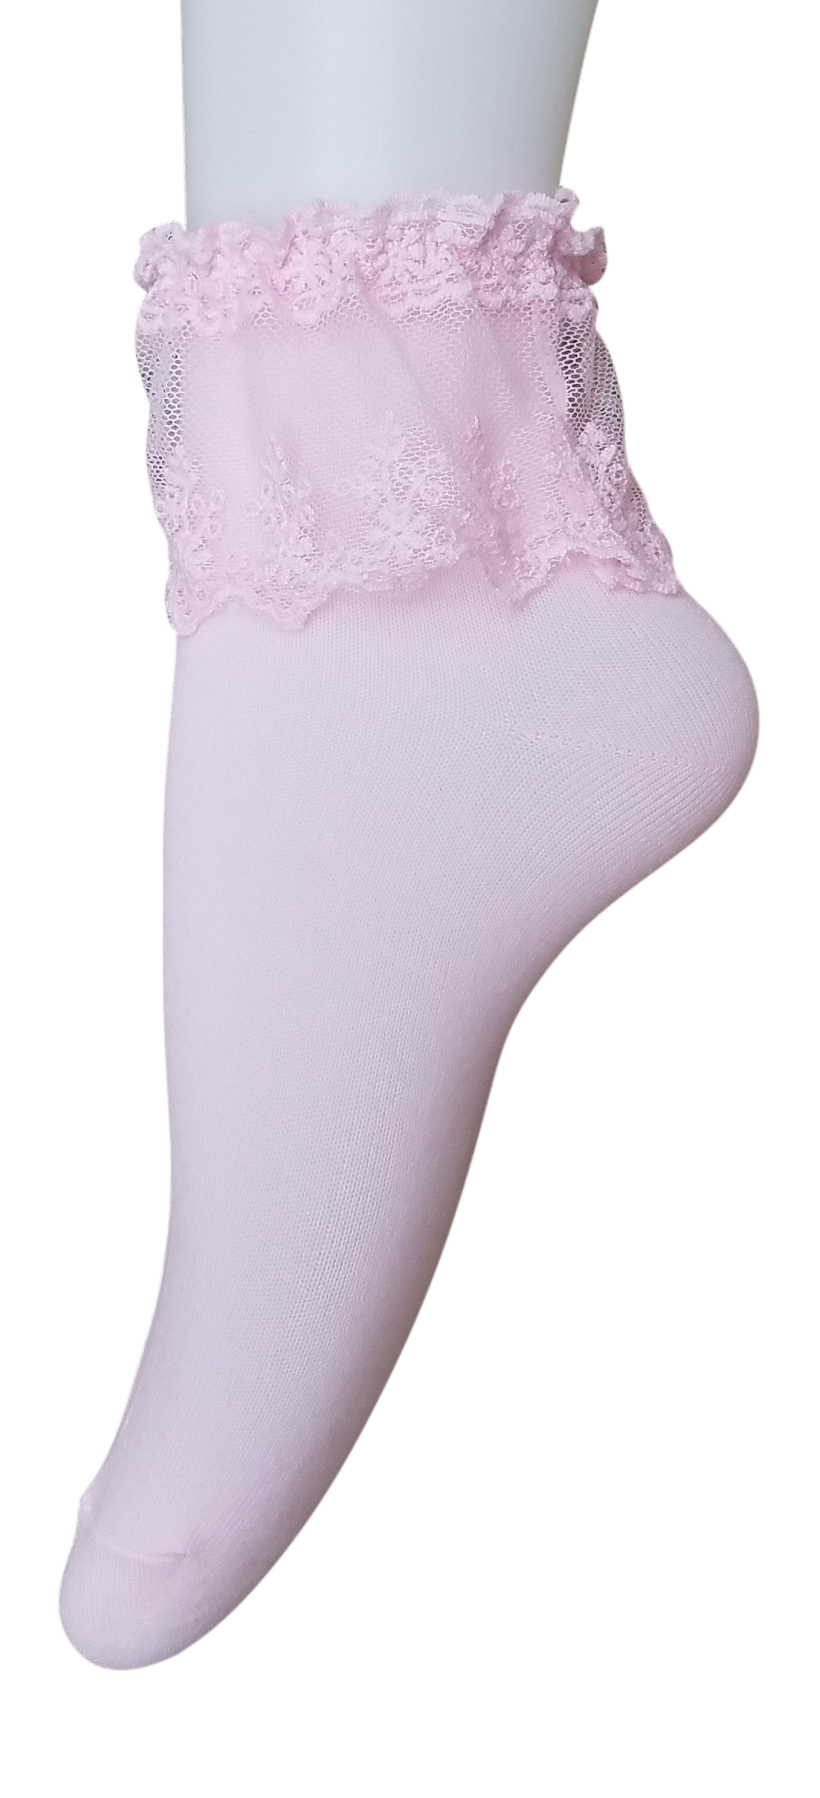 AM Landen Super Cute Pink Princess Lace Ruffle Frilly Ankle Socks